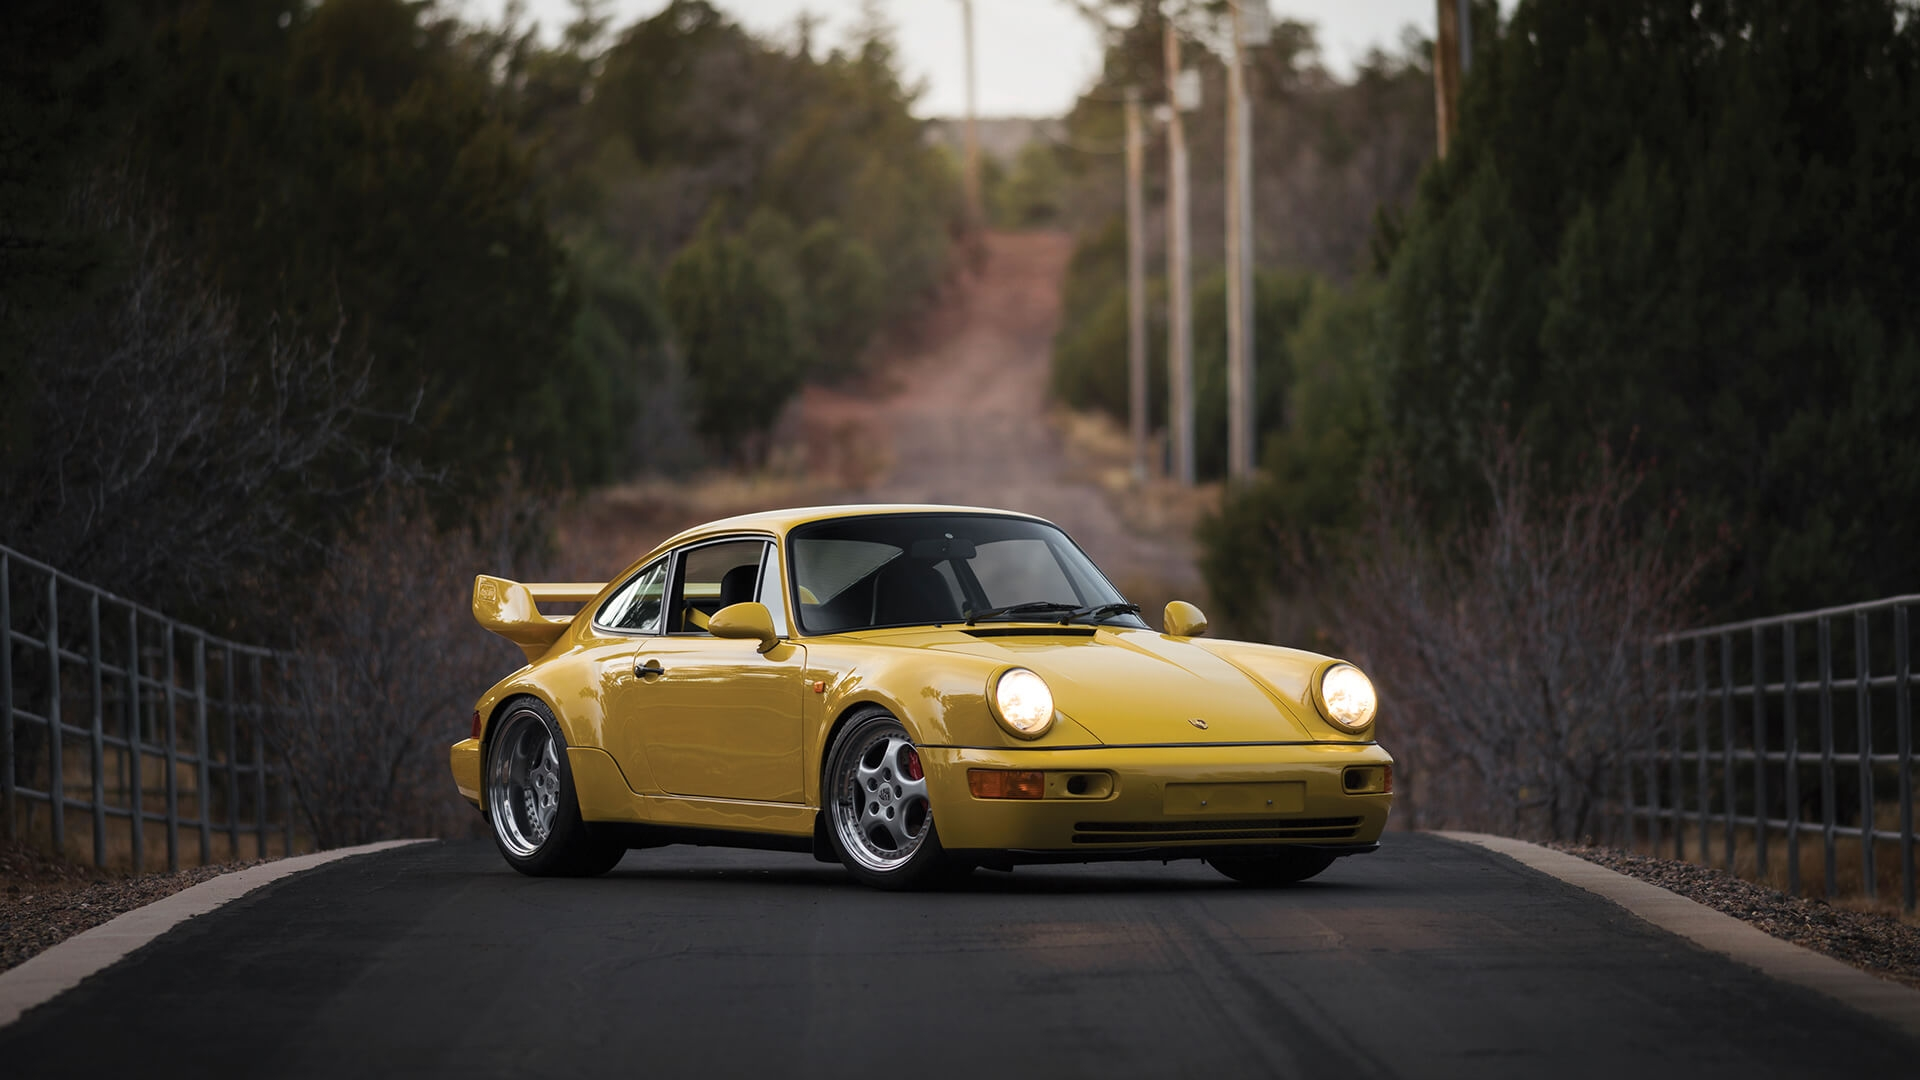 Porsches at the 2018 Amelia Island auctions – an expert's view